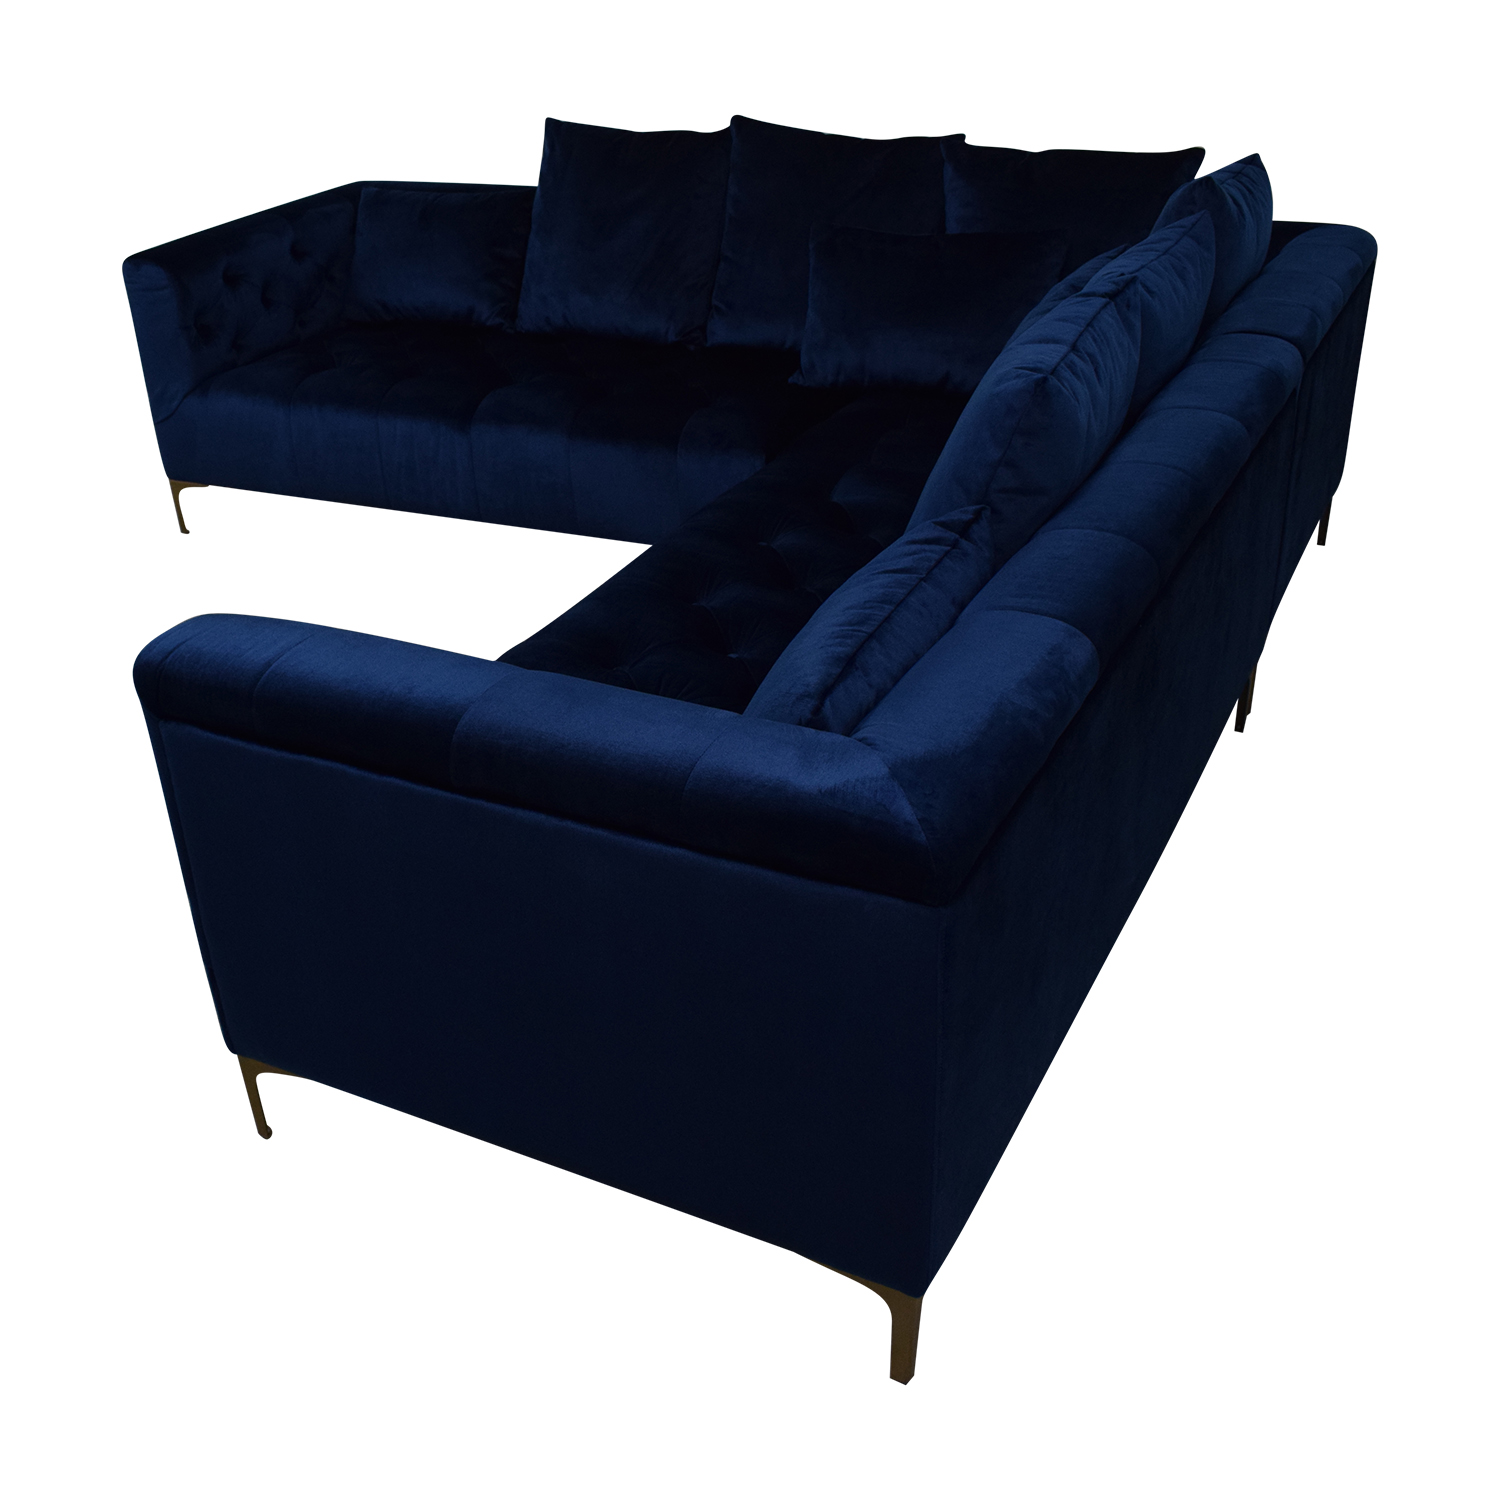 45 off ms chesterfield royal blue l shaped tufted sectional sofas